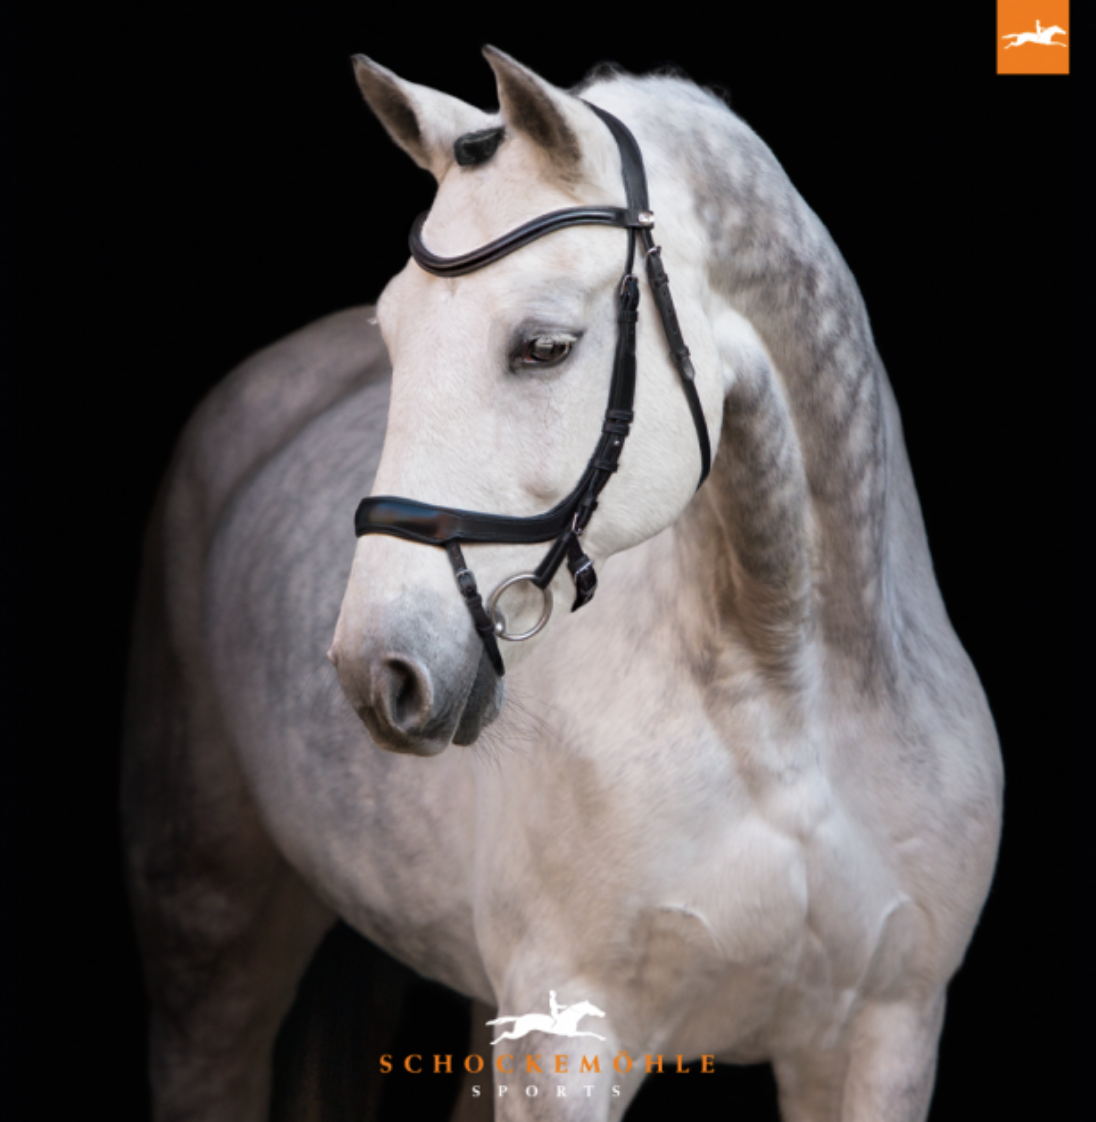 Schockemohle Equitus Alpha Anatomical Bridle for dressage horseback riders. This is a great horseback riding bridle for competition and everyday horseback riding.